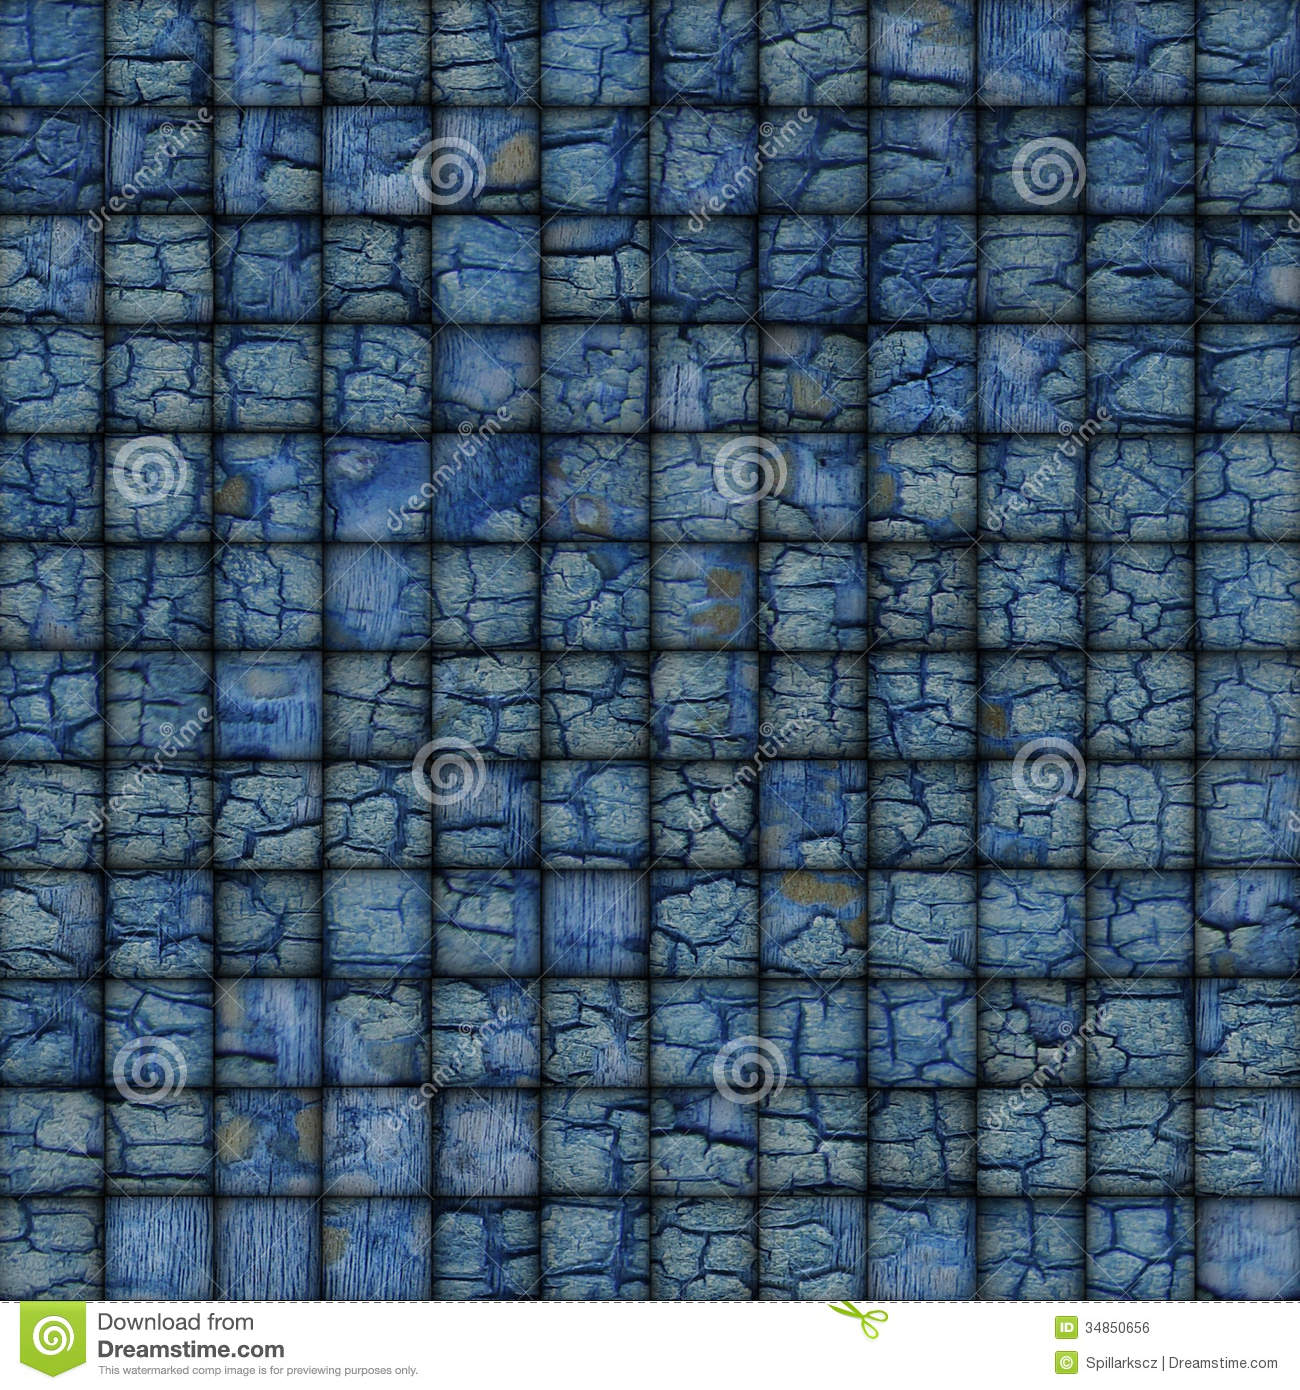 Blue Mosaic Tile Worn Old Wall Floor With Cracks Stock Photo - Image ...